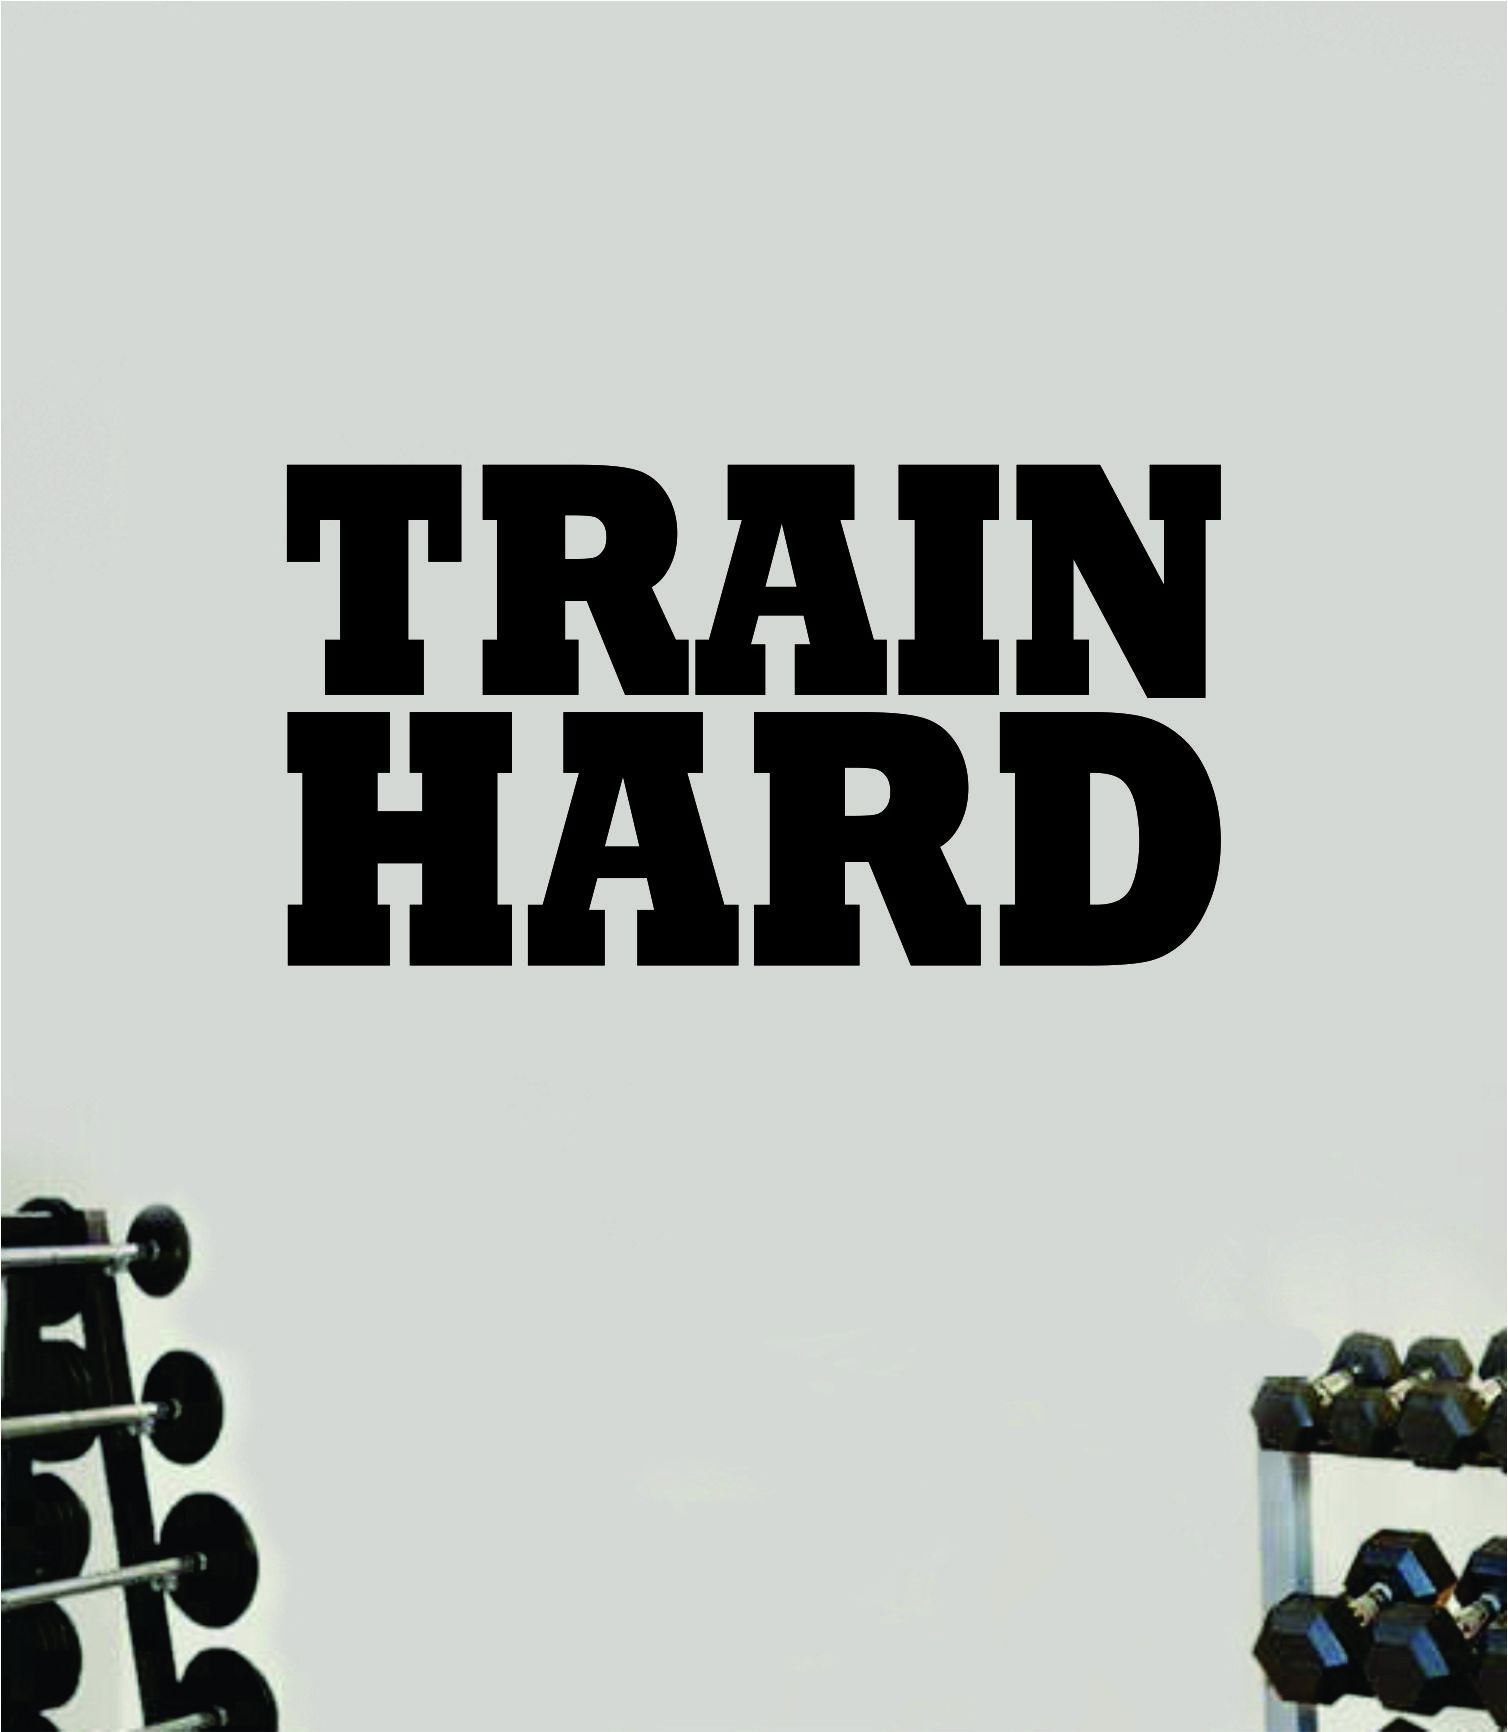 Train Hard V3 Wall Decal Home Decor Bedroom Room Vinyl Sticker Art Teen Work Out Quote Gym Fitness Girls Lift Strong Inspirational Motivational Health School - black